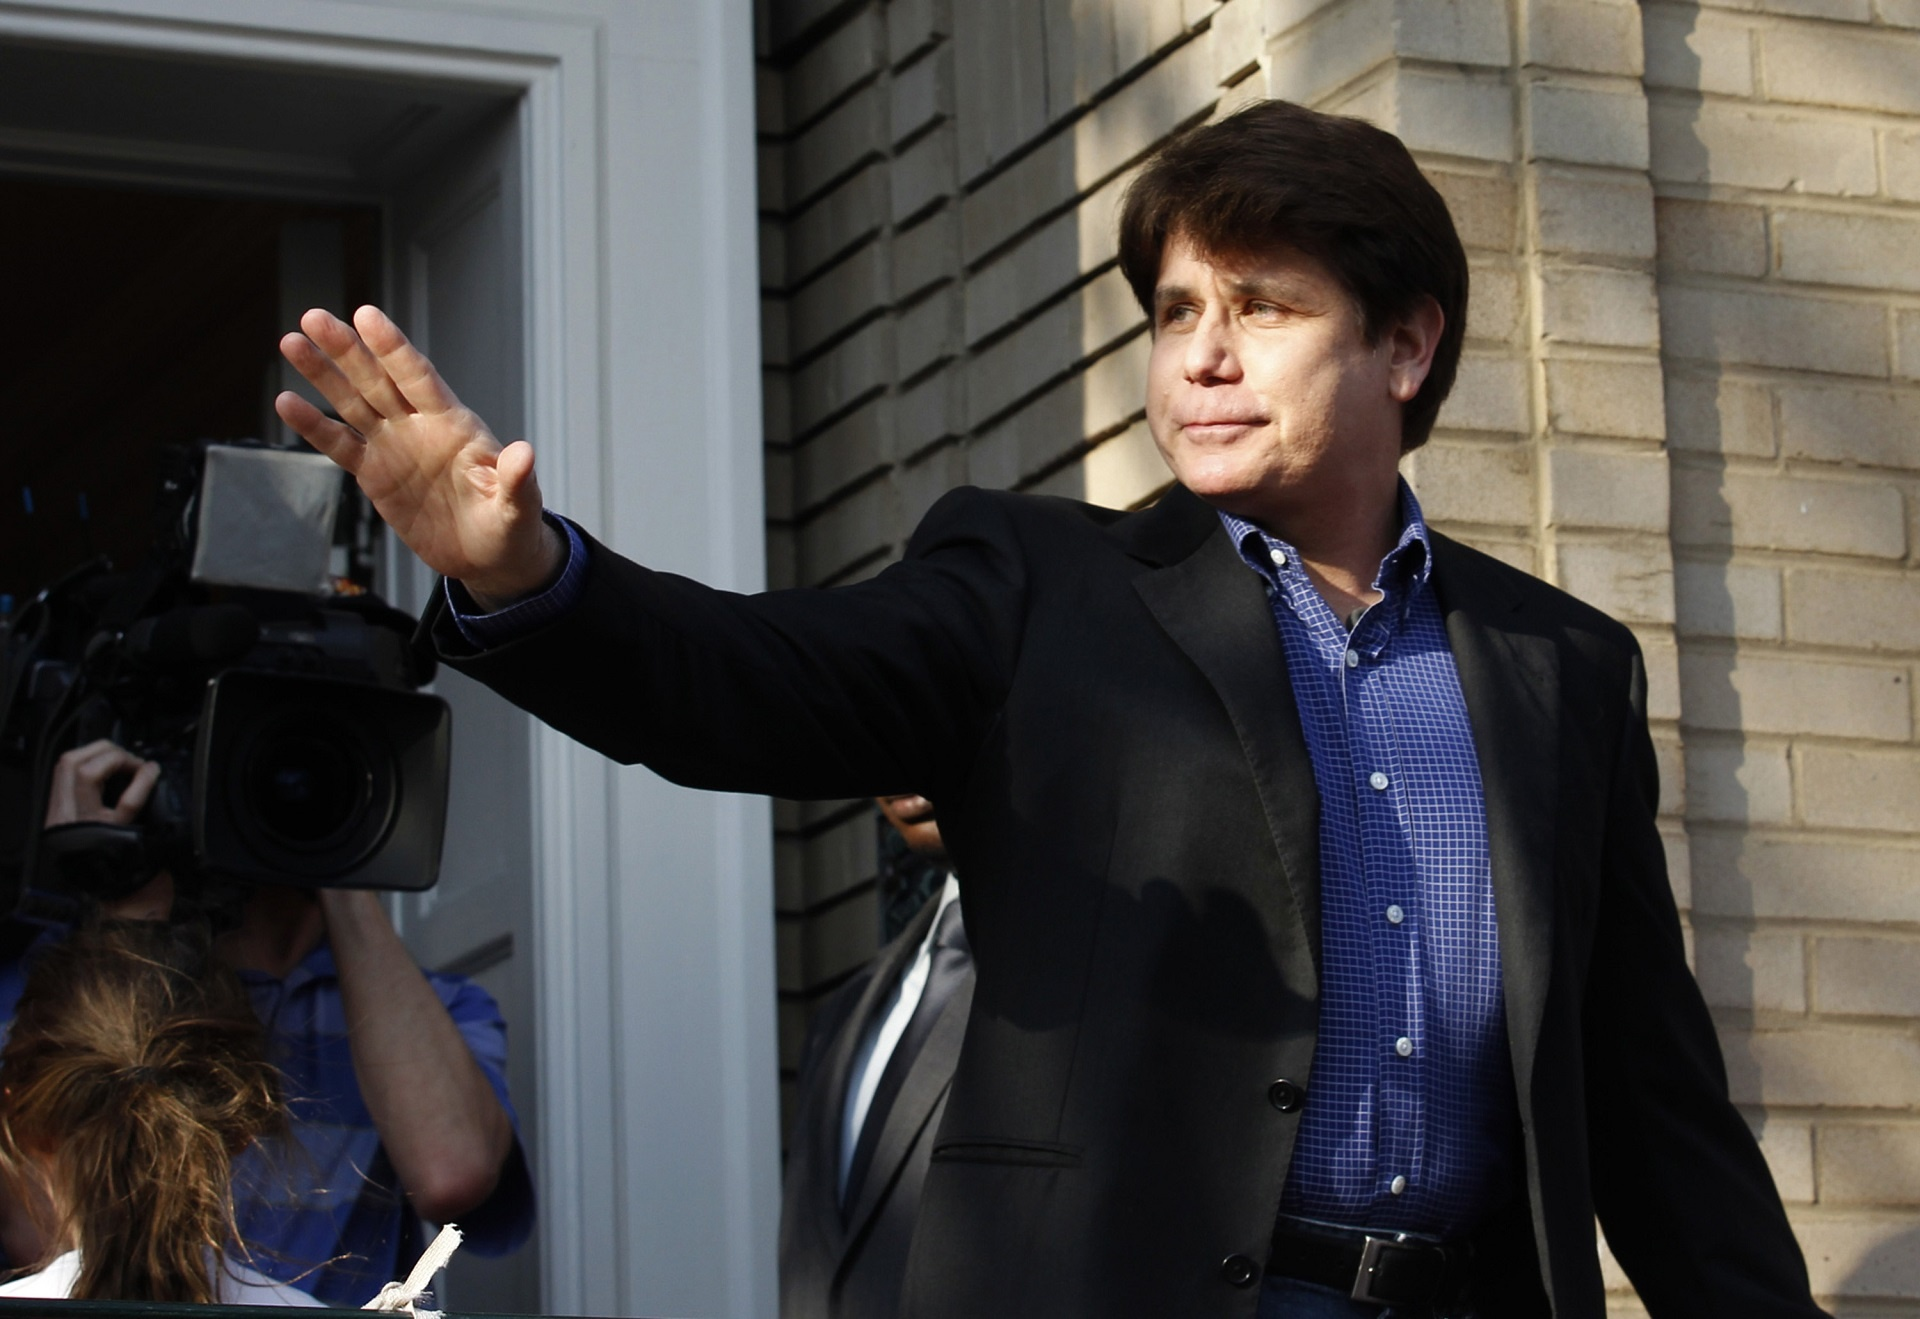 President Trump grants clemency to former Illinois Gov. Rod Blagojevich, ten others